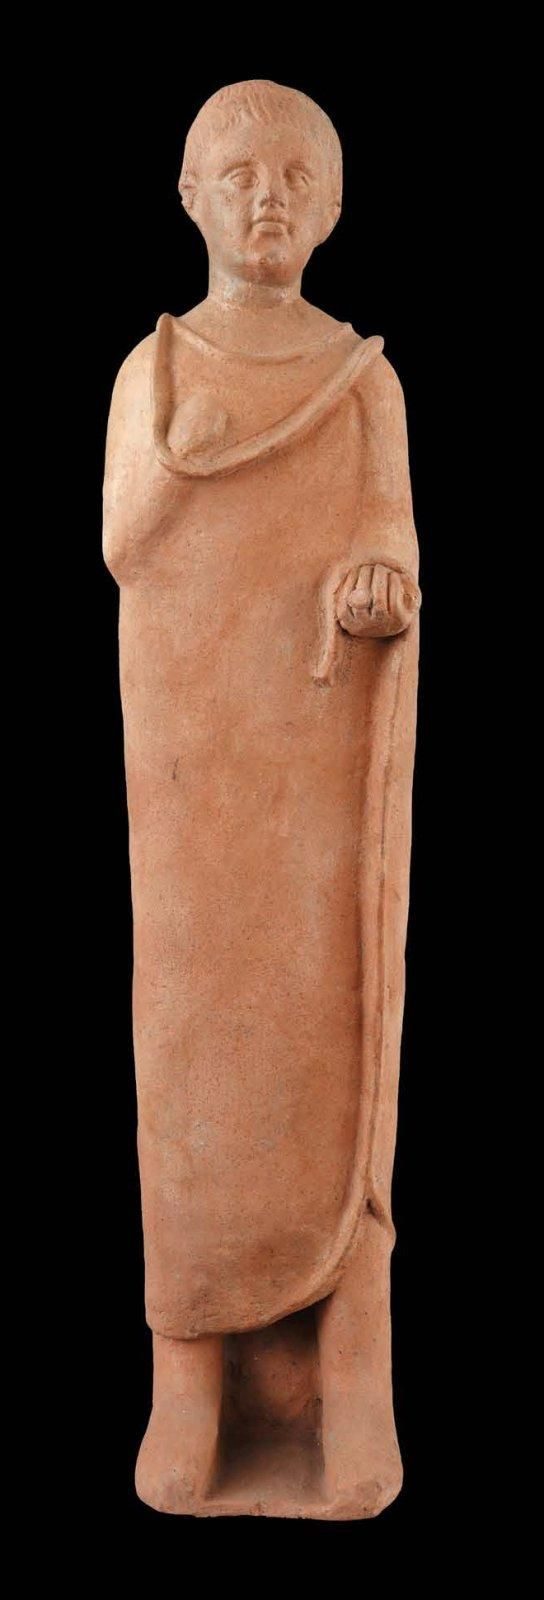 Etruscan terracotta votive statue of a youth. 3rd-2nd century B.C. 43,3 in. high. Ancienne collection américaine, début d